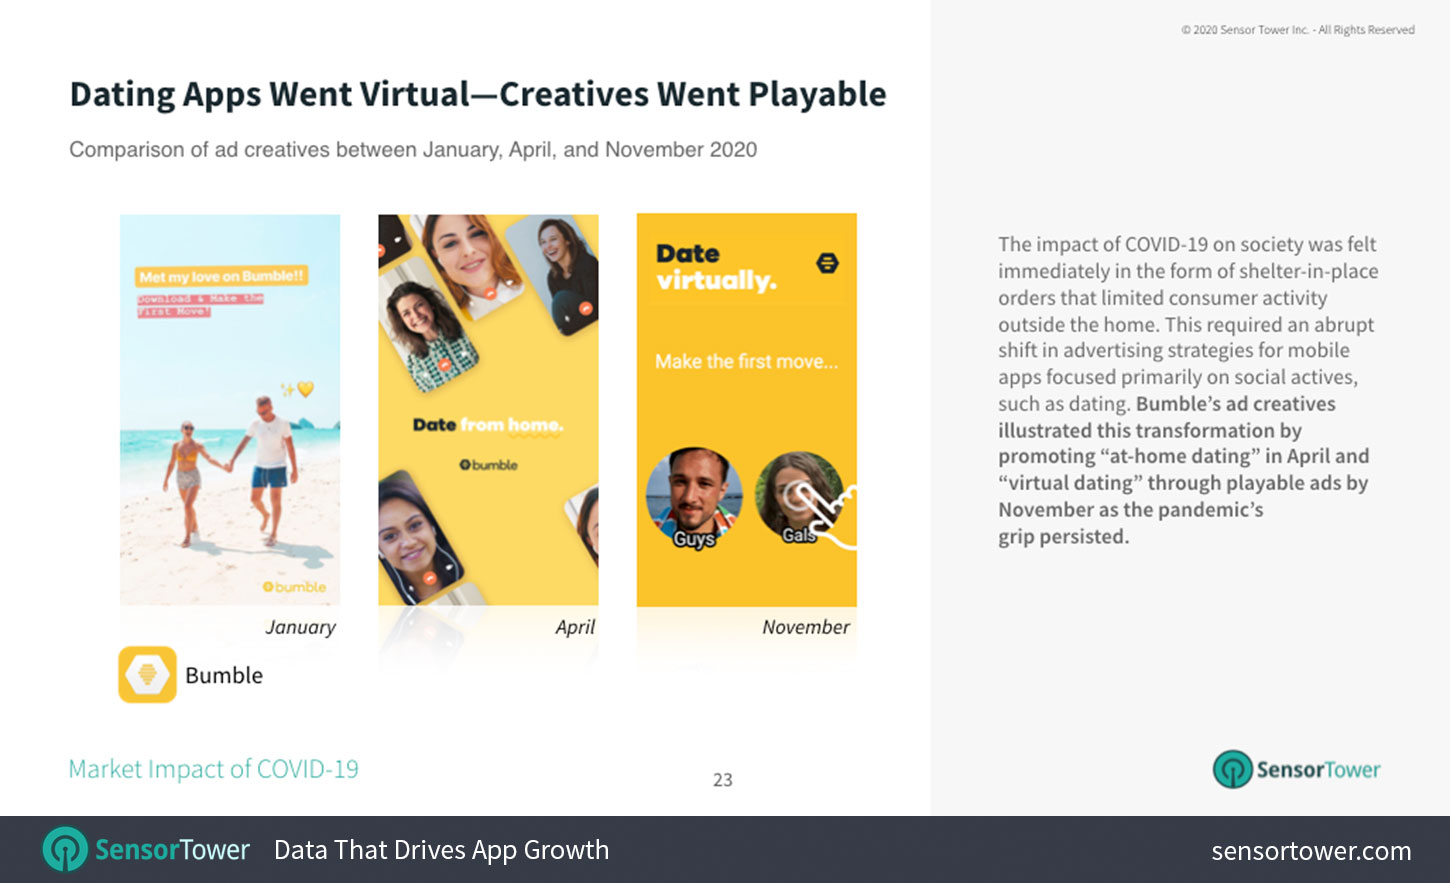 From January to November, dating app creatives evolved to include more playable ads.